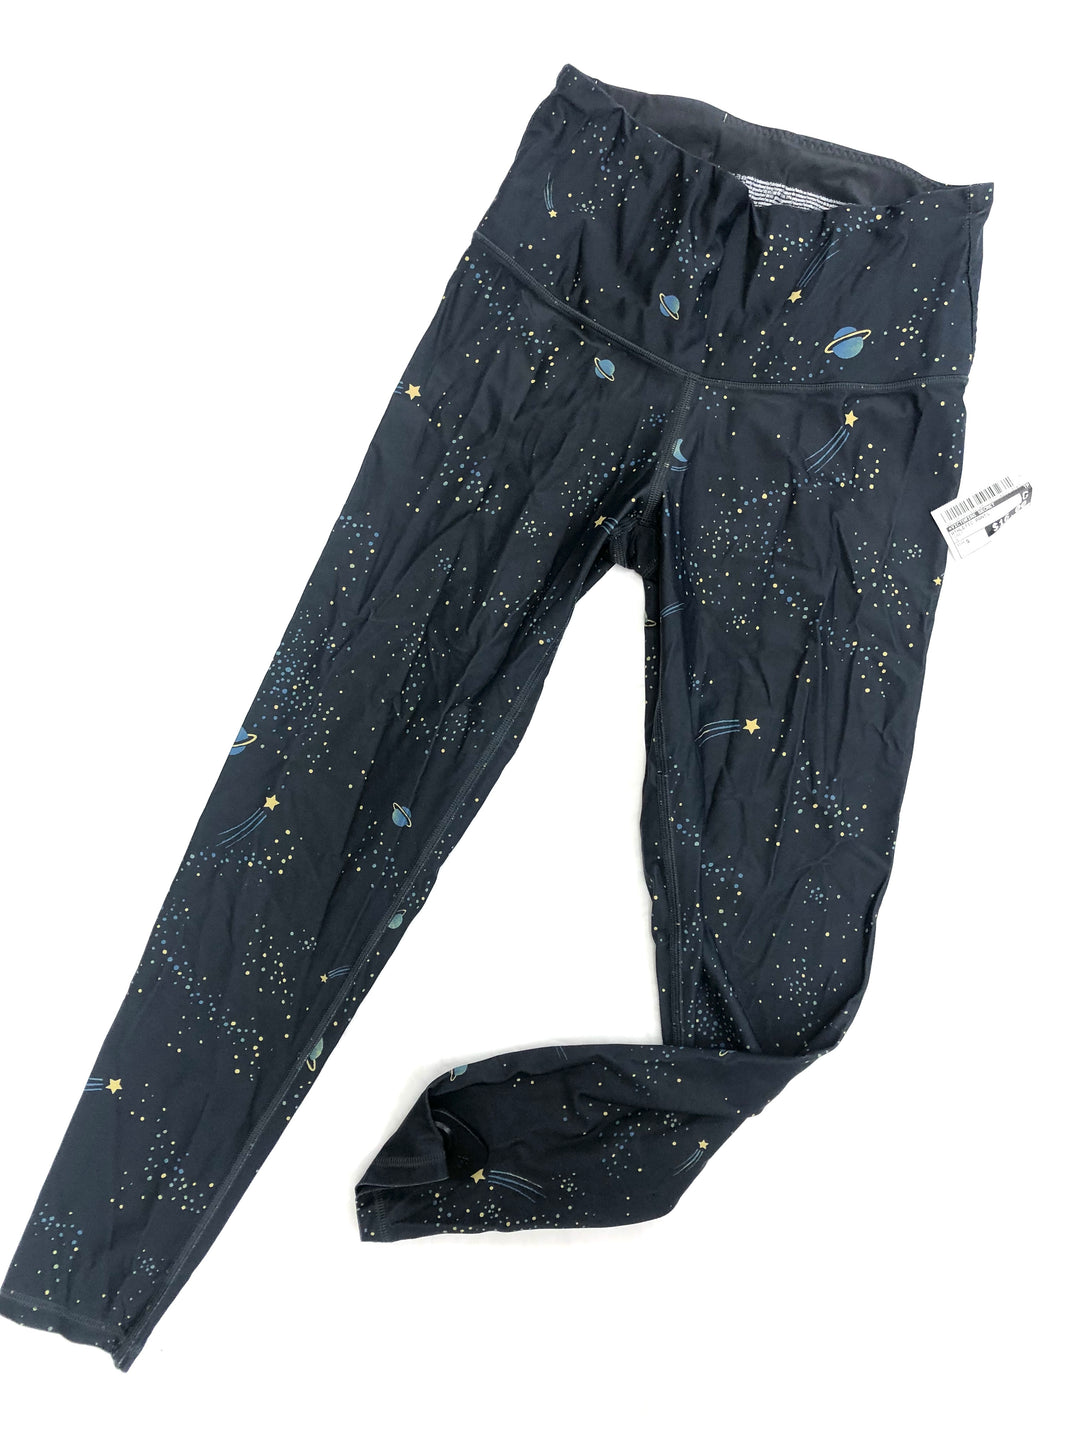 Primary Photo - brand: victorias secret , style: athletic pants , color: grey , size: s , sku: 267-26790-4427